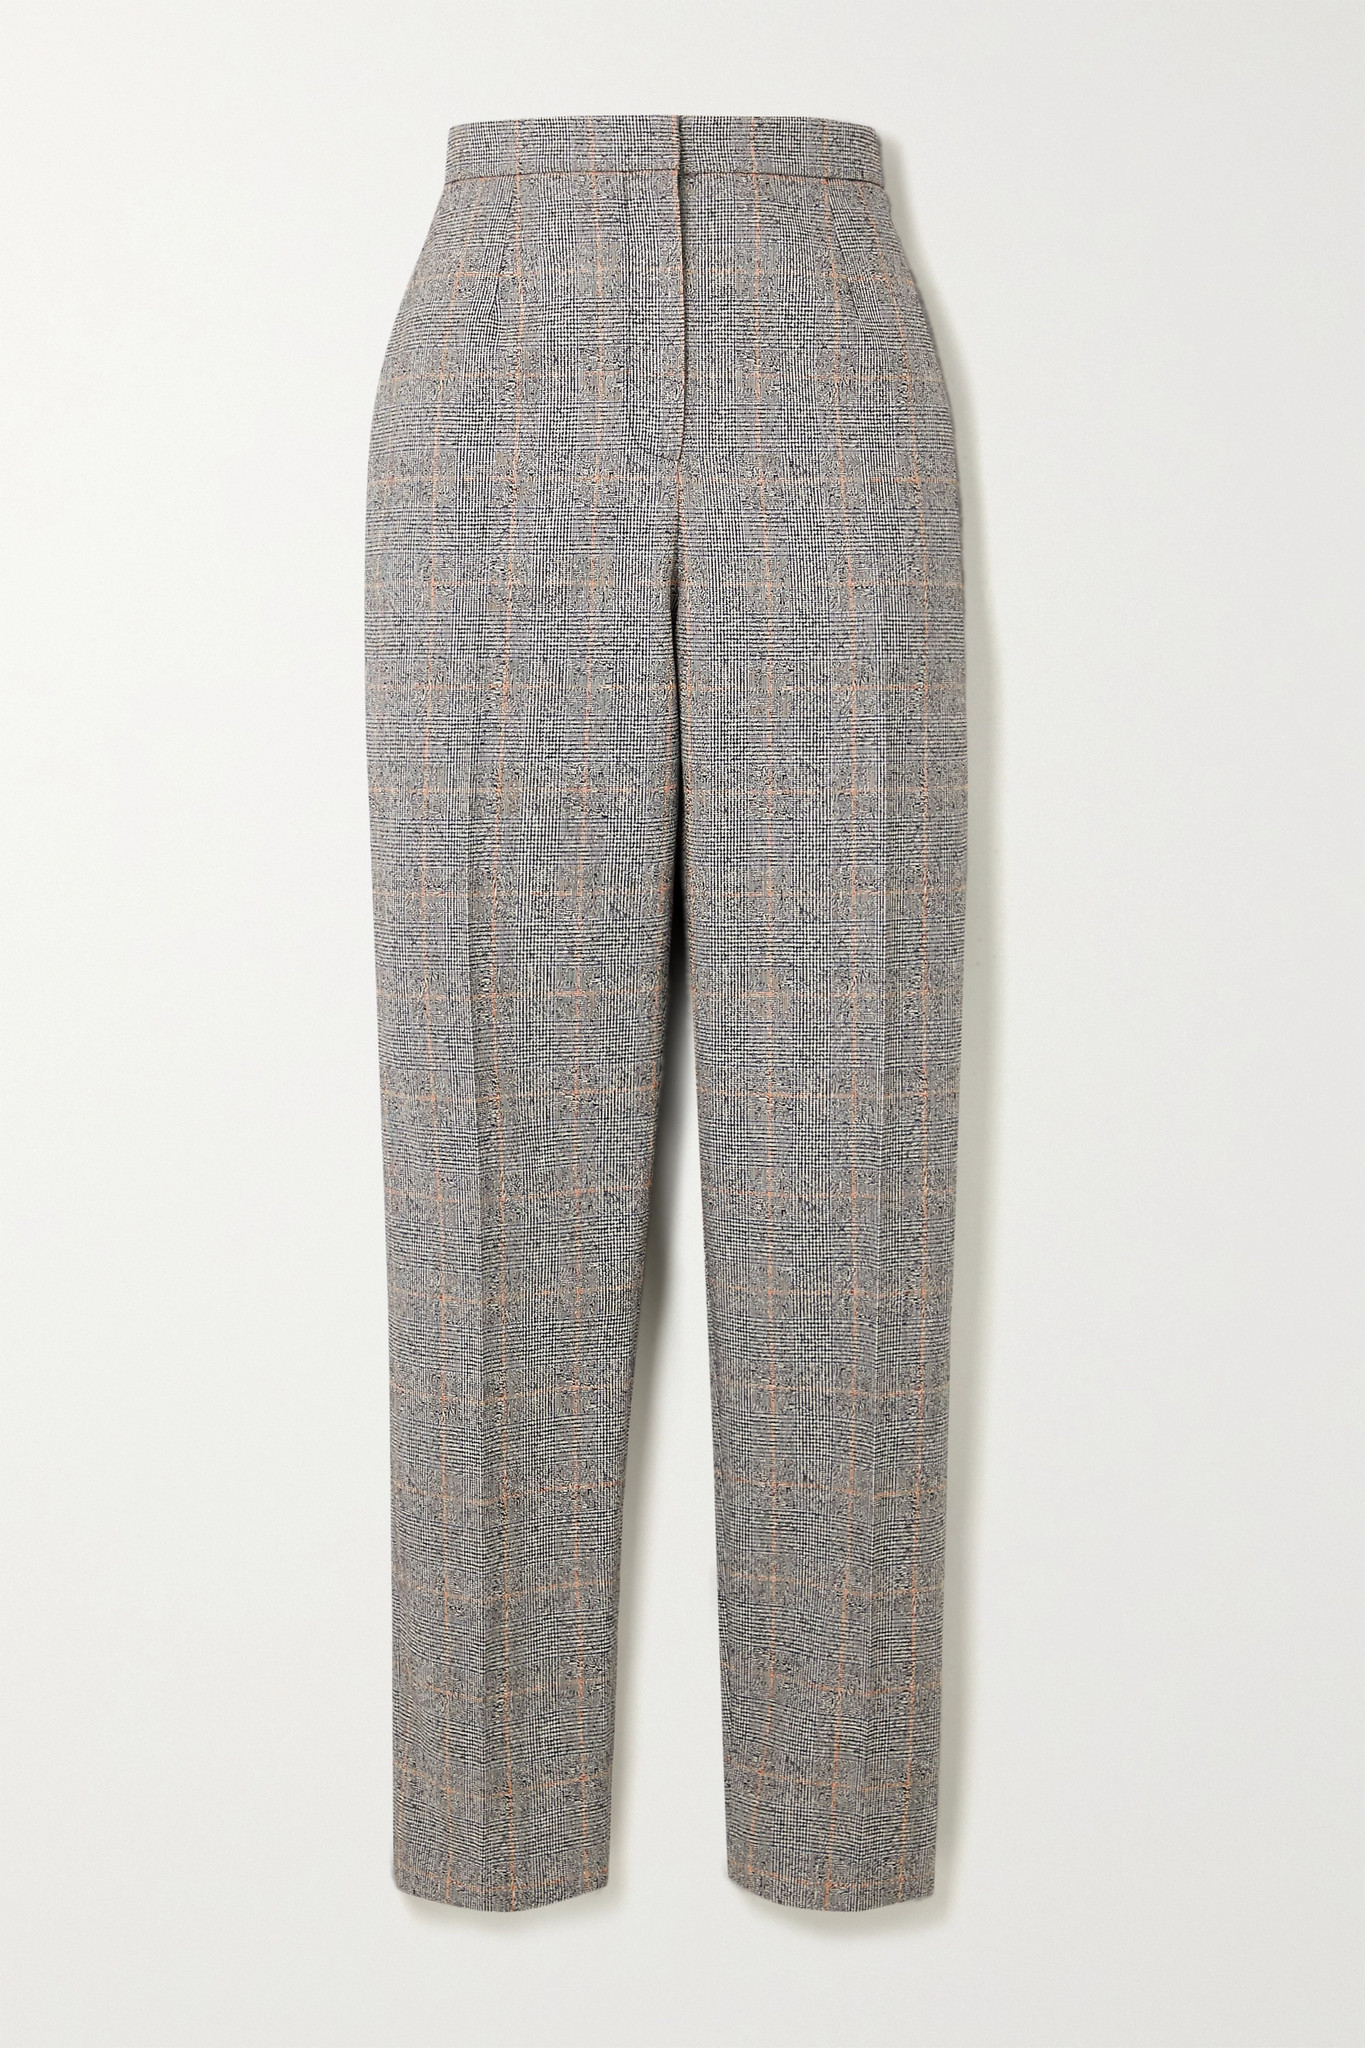 ALEXANDER MCQUEEN - Prince Of Wales Checked Wool-blend Tapered Pants - Black - IT42